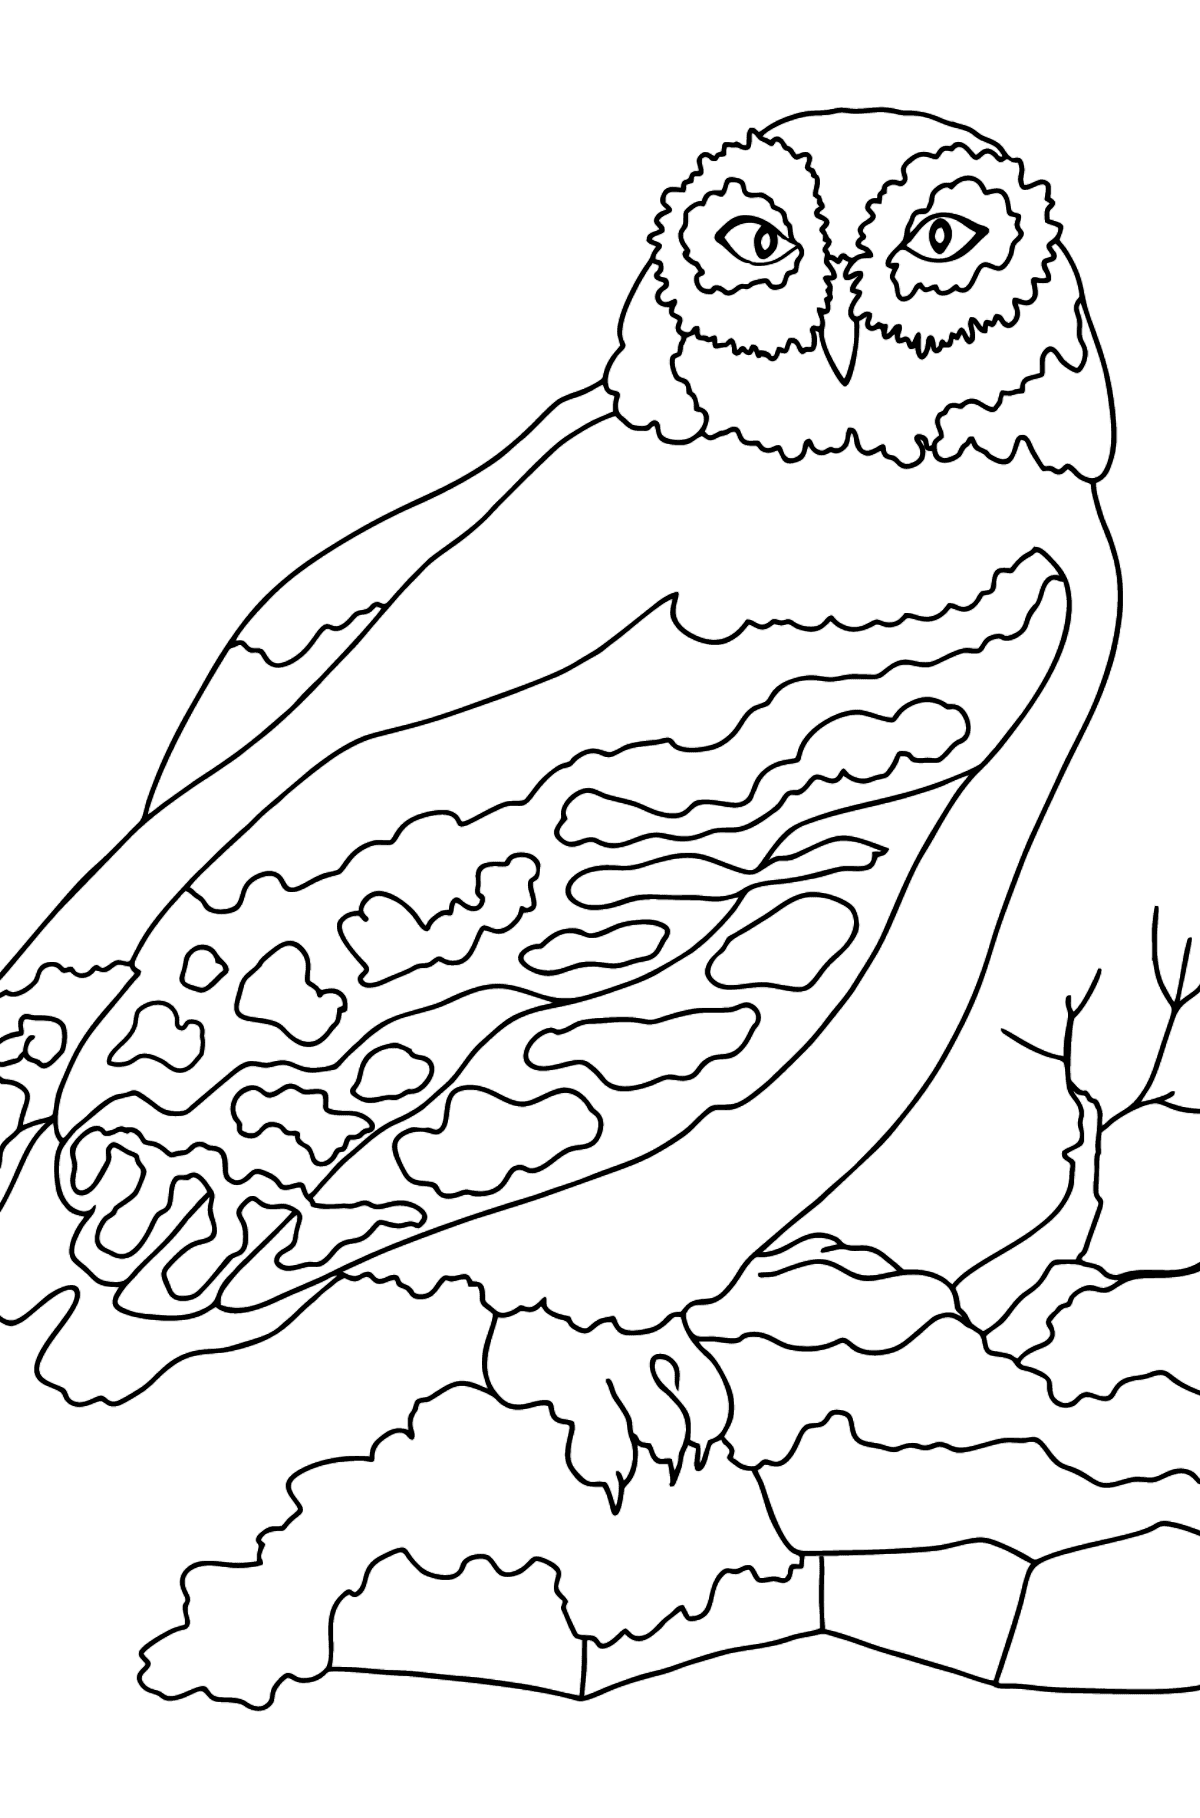 Coloring Page - A Snow Owl - Coloring Pages for Kids